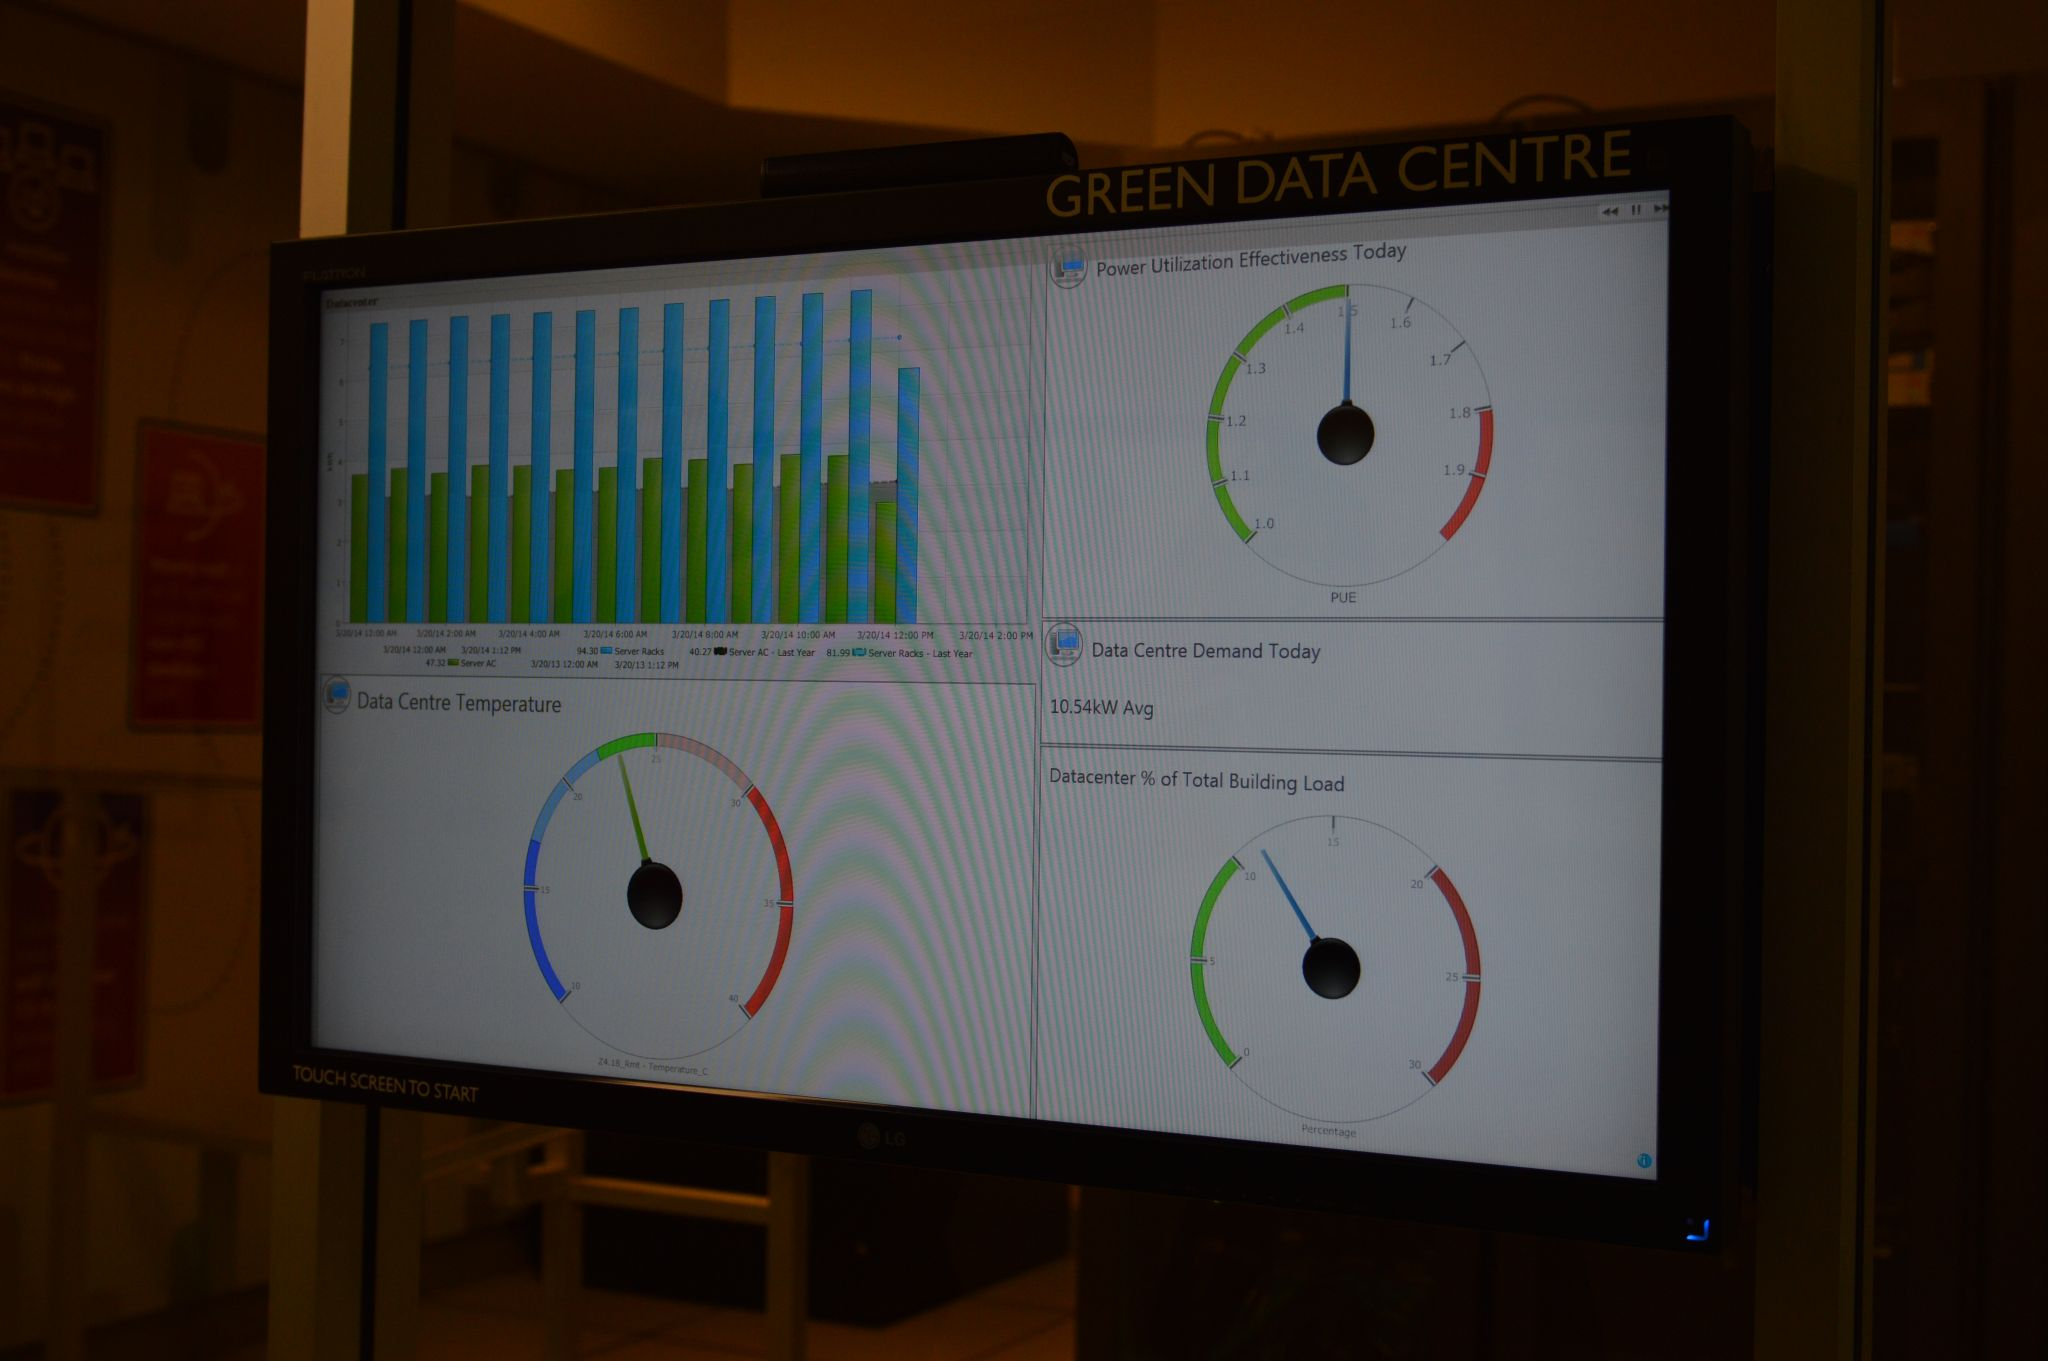 Digital signage placed throughout the Earth Rangers Centre with automation software allows for real-time energy monitoring.